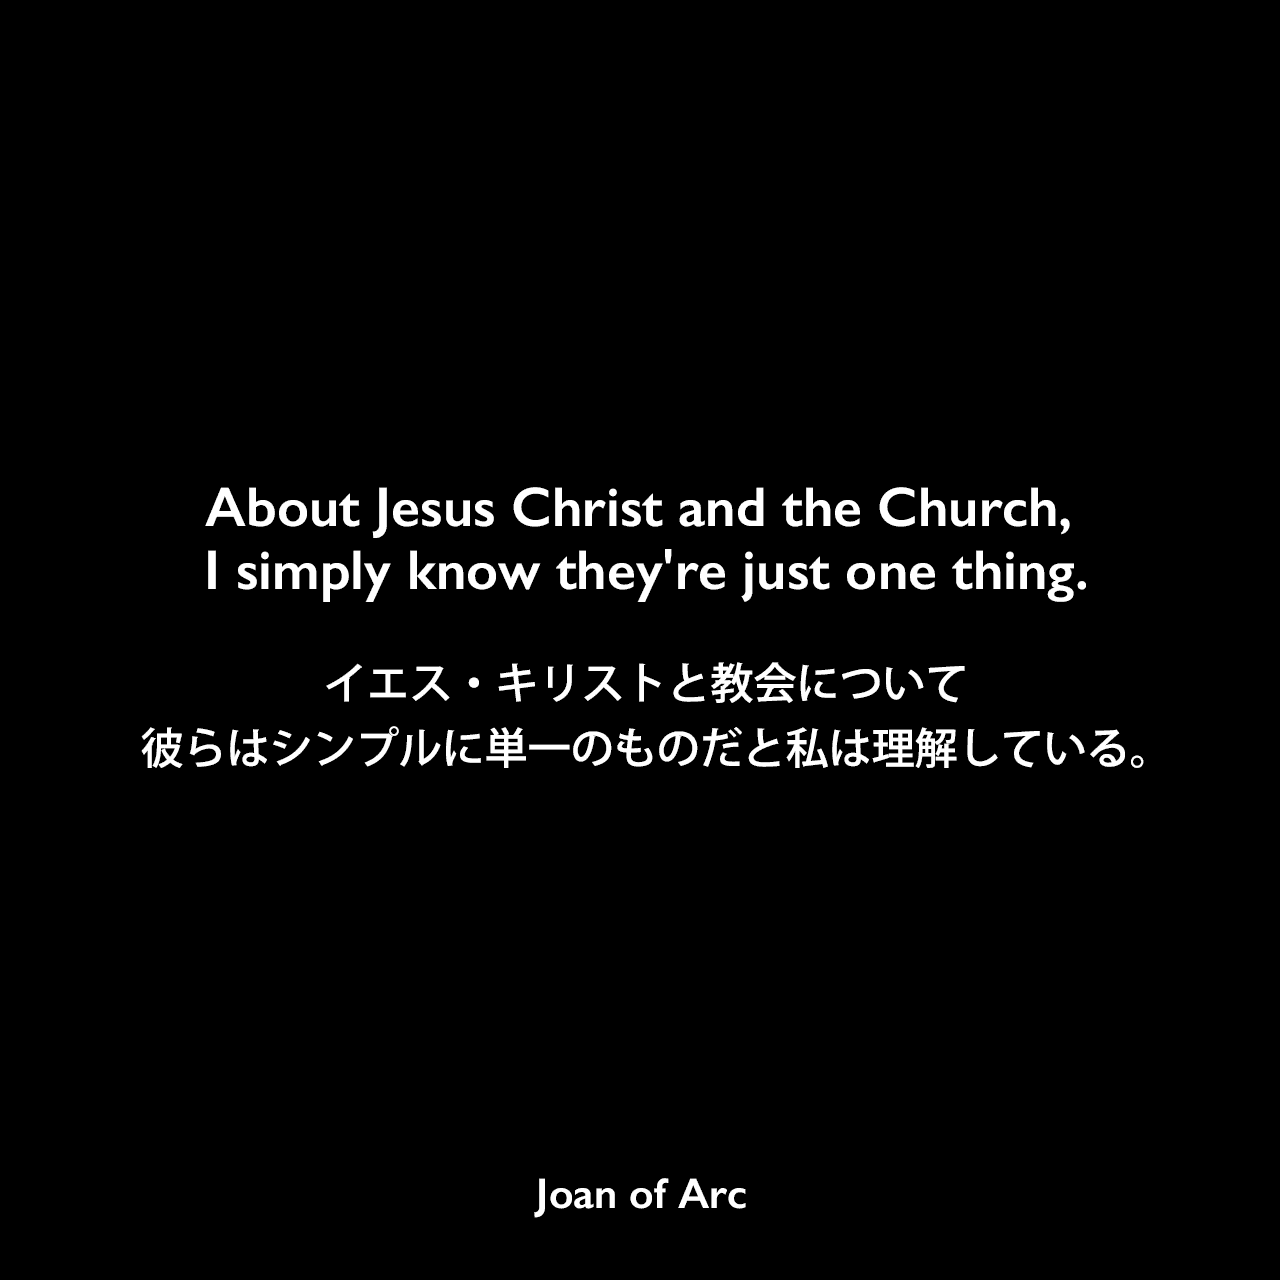 About Jesus Christ and the Church, I simply know they're just one thing.イエス・キリストと教会について、彼らはシンプルに単一のものだと私は理解している。- ジャンヌ・ダルクの公判記録よりJoan of Arc